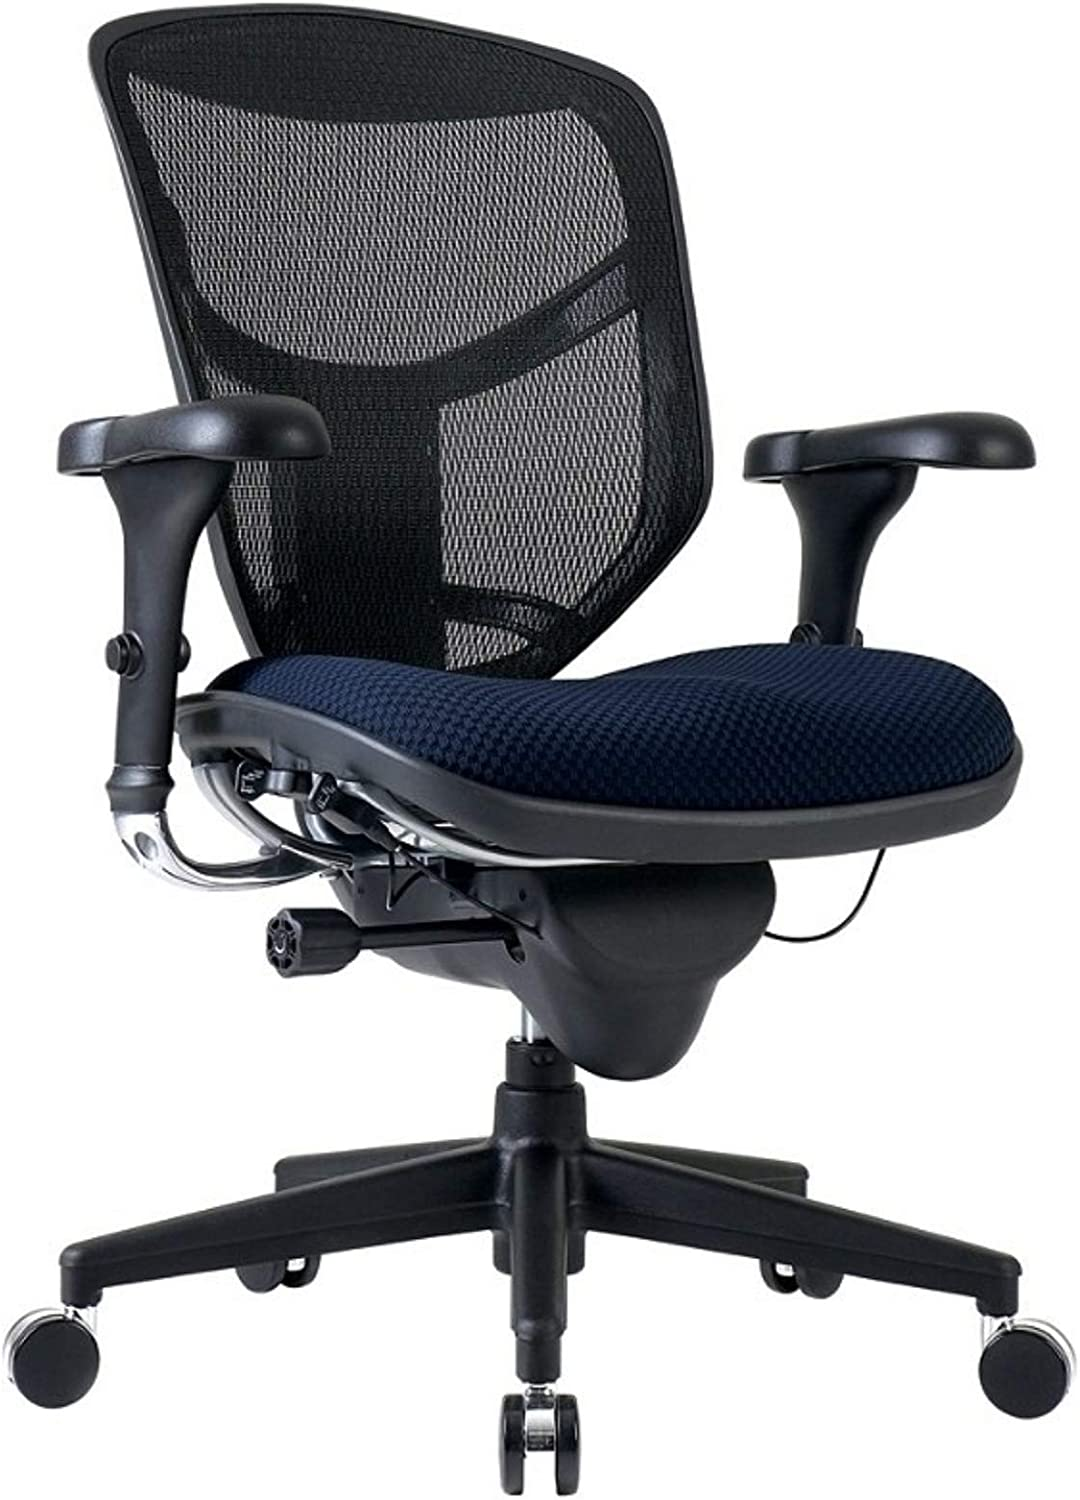 WorkPro Quantum 9000 Ergonomic Mesh/Fabric Mid-Back Manager's Chair, Navy/Black